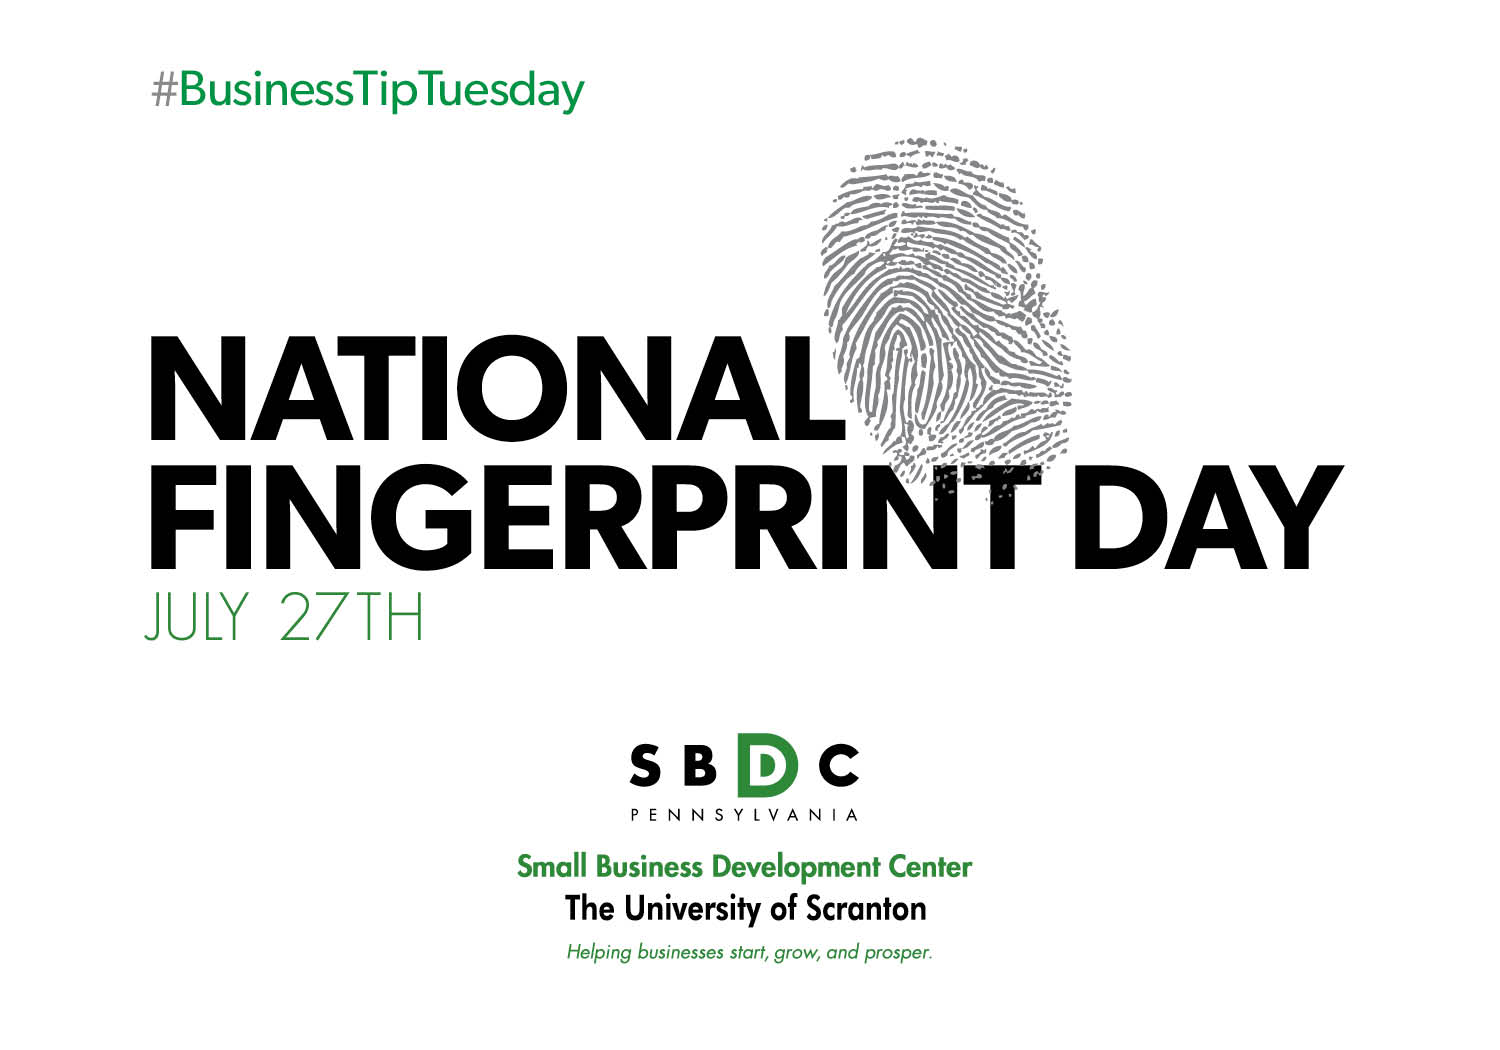 #BusinessTipTuesday – National Fingerprint Day